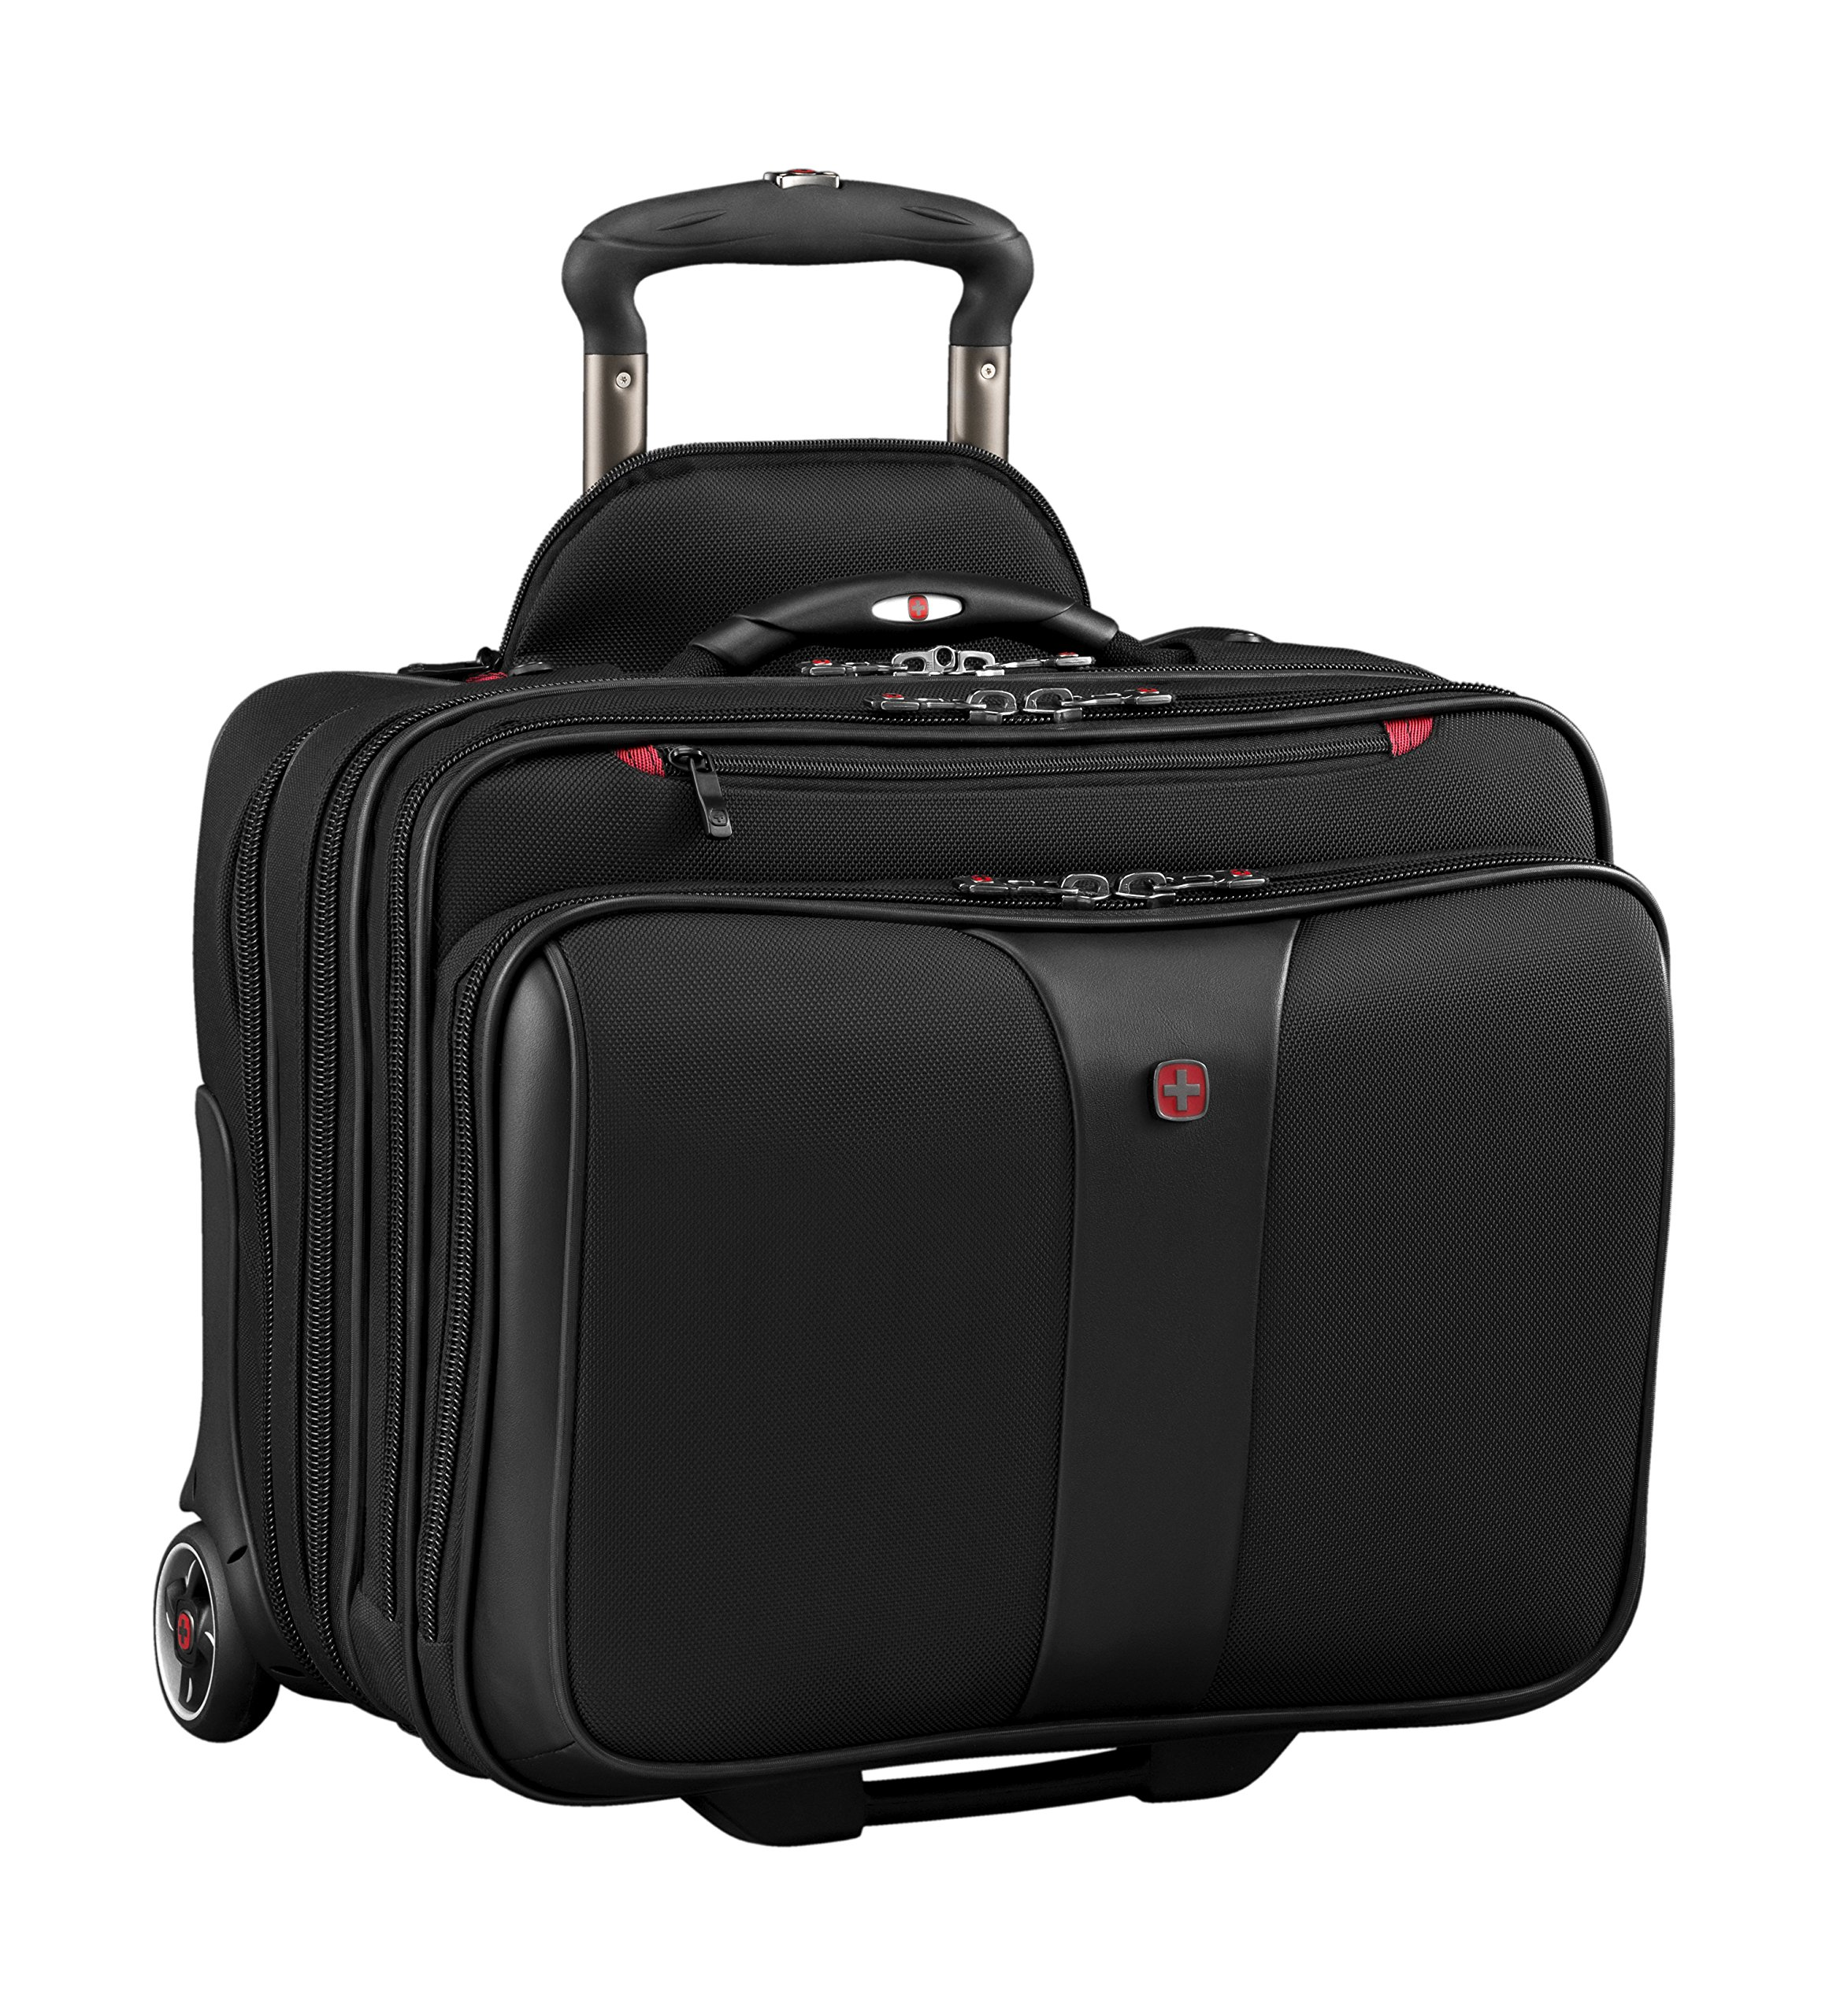 Wenger Luggage Patriot Ii 2-Piece 15.6'' Wheeled Business Set Laptop Bag, Black, One Size